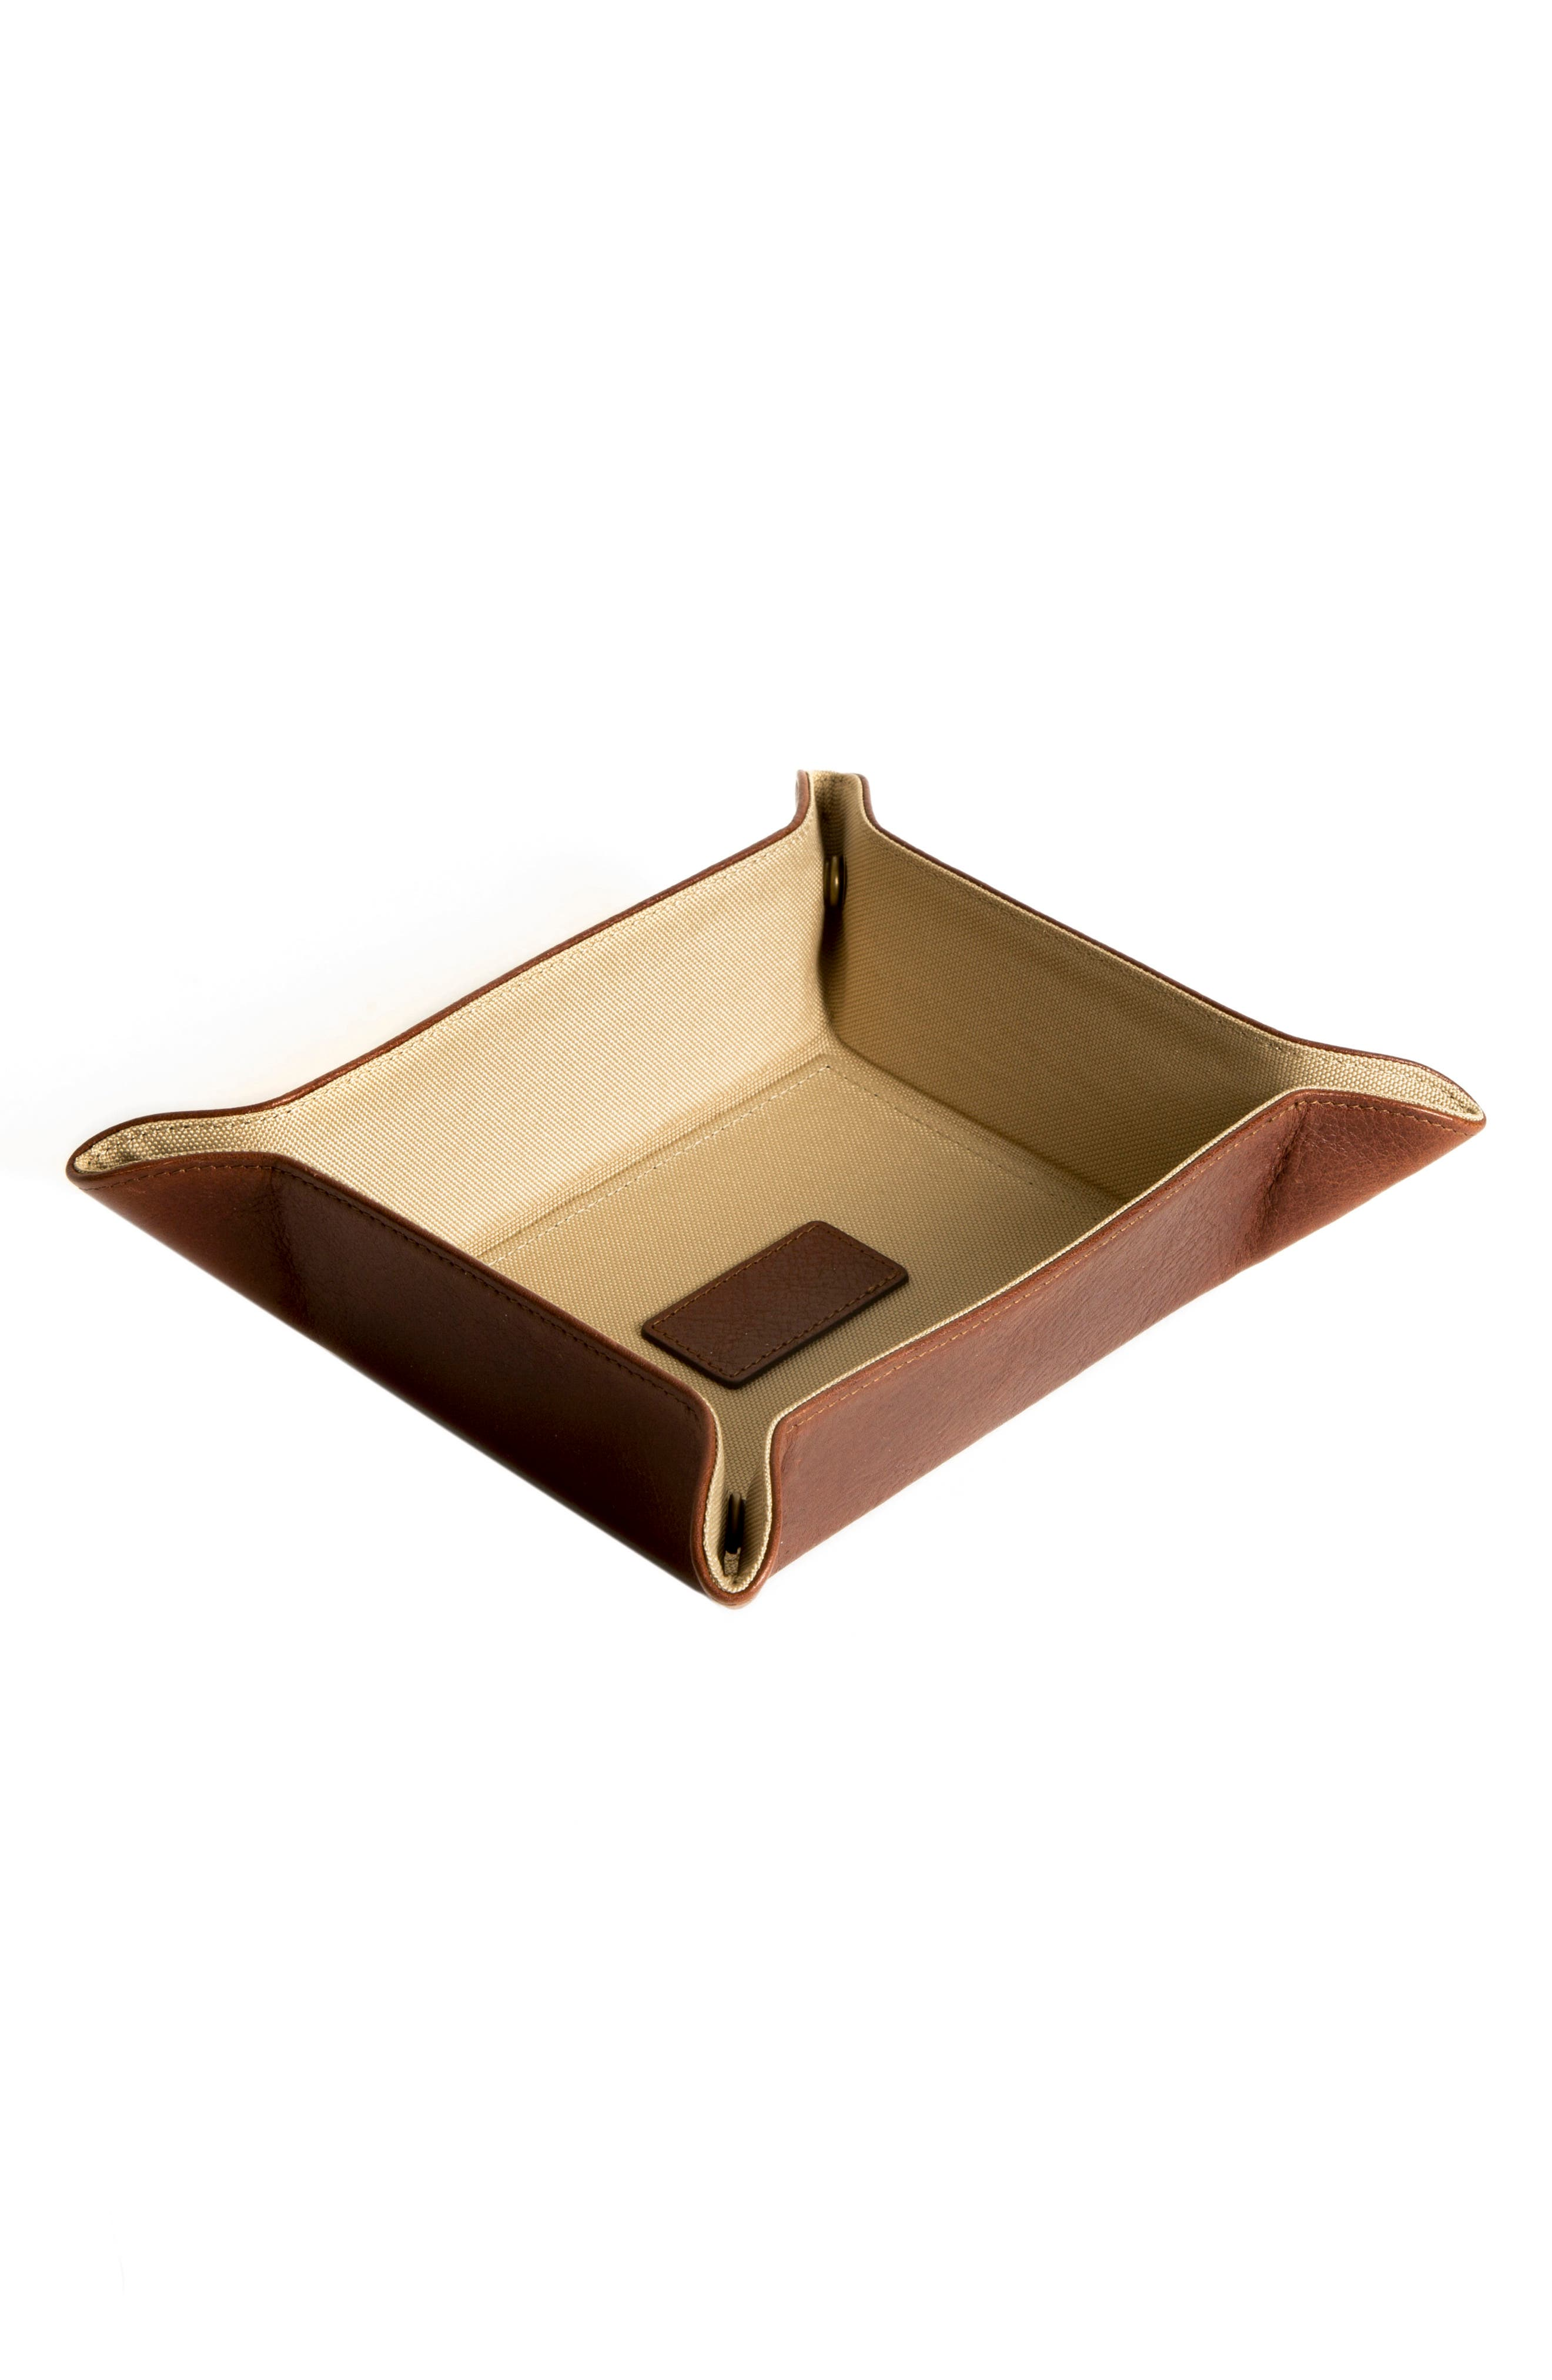 Becker Catchall Tray,                             Main thumbnail 1, color,                             Whiskey